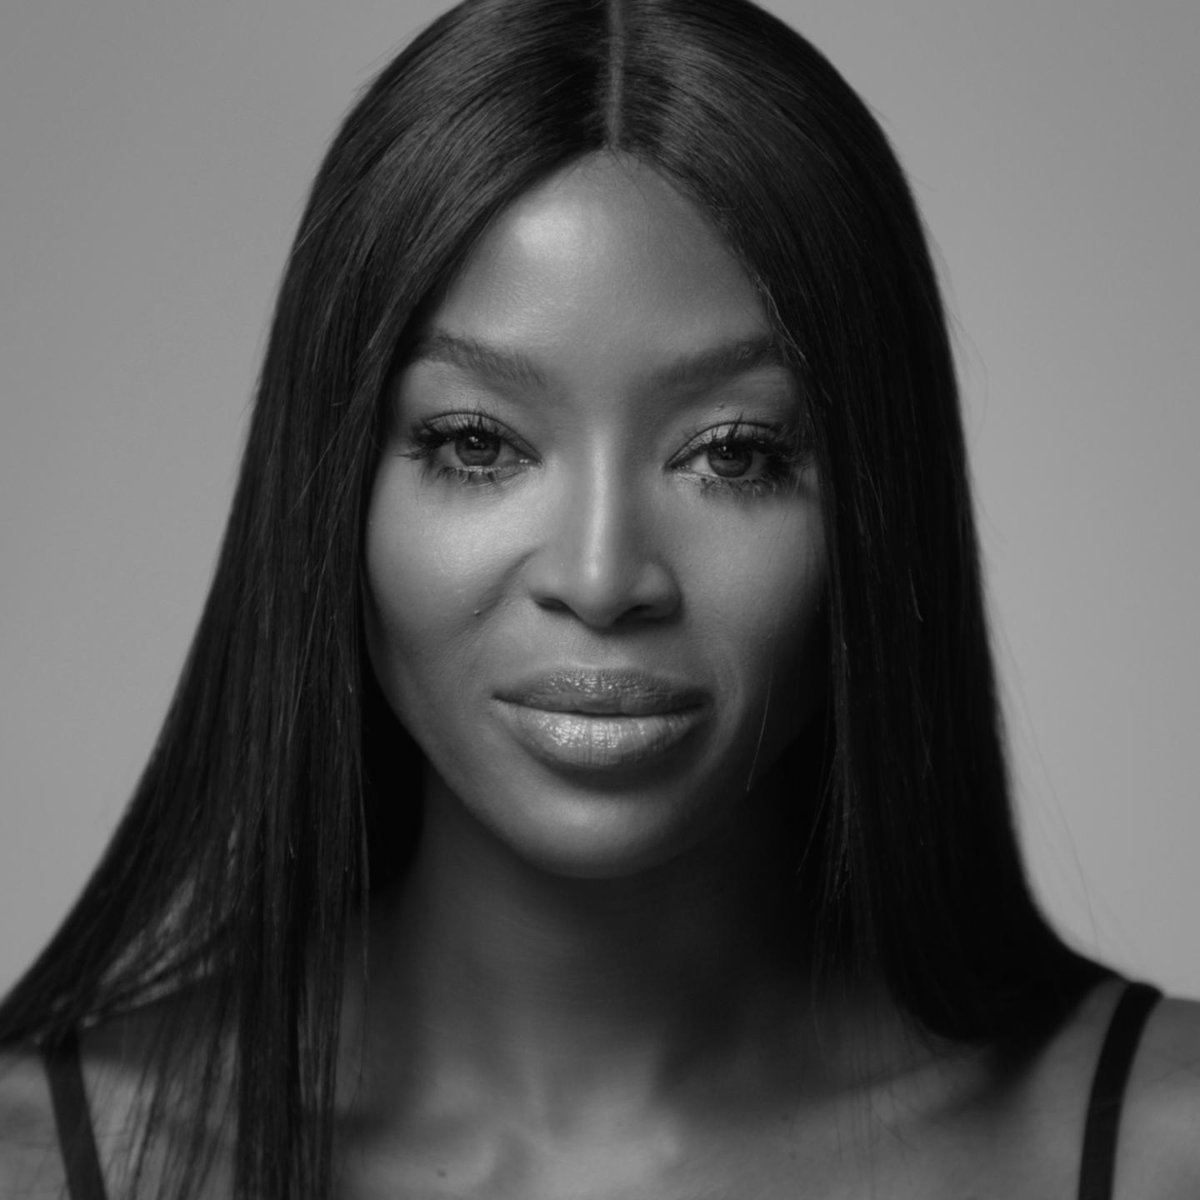 THE NEW J12. IT'S ALL ABOUT SECONDS.15 seconds with Naomi Campbell, including a decisive one. Discover the collection on http://chanel.com/-NaomiCampbell_j12 …#TheNewJ12 #CHANELWatches #ItsAllAboutSeconds